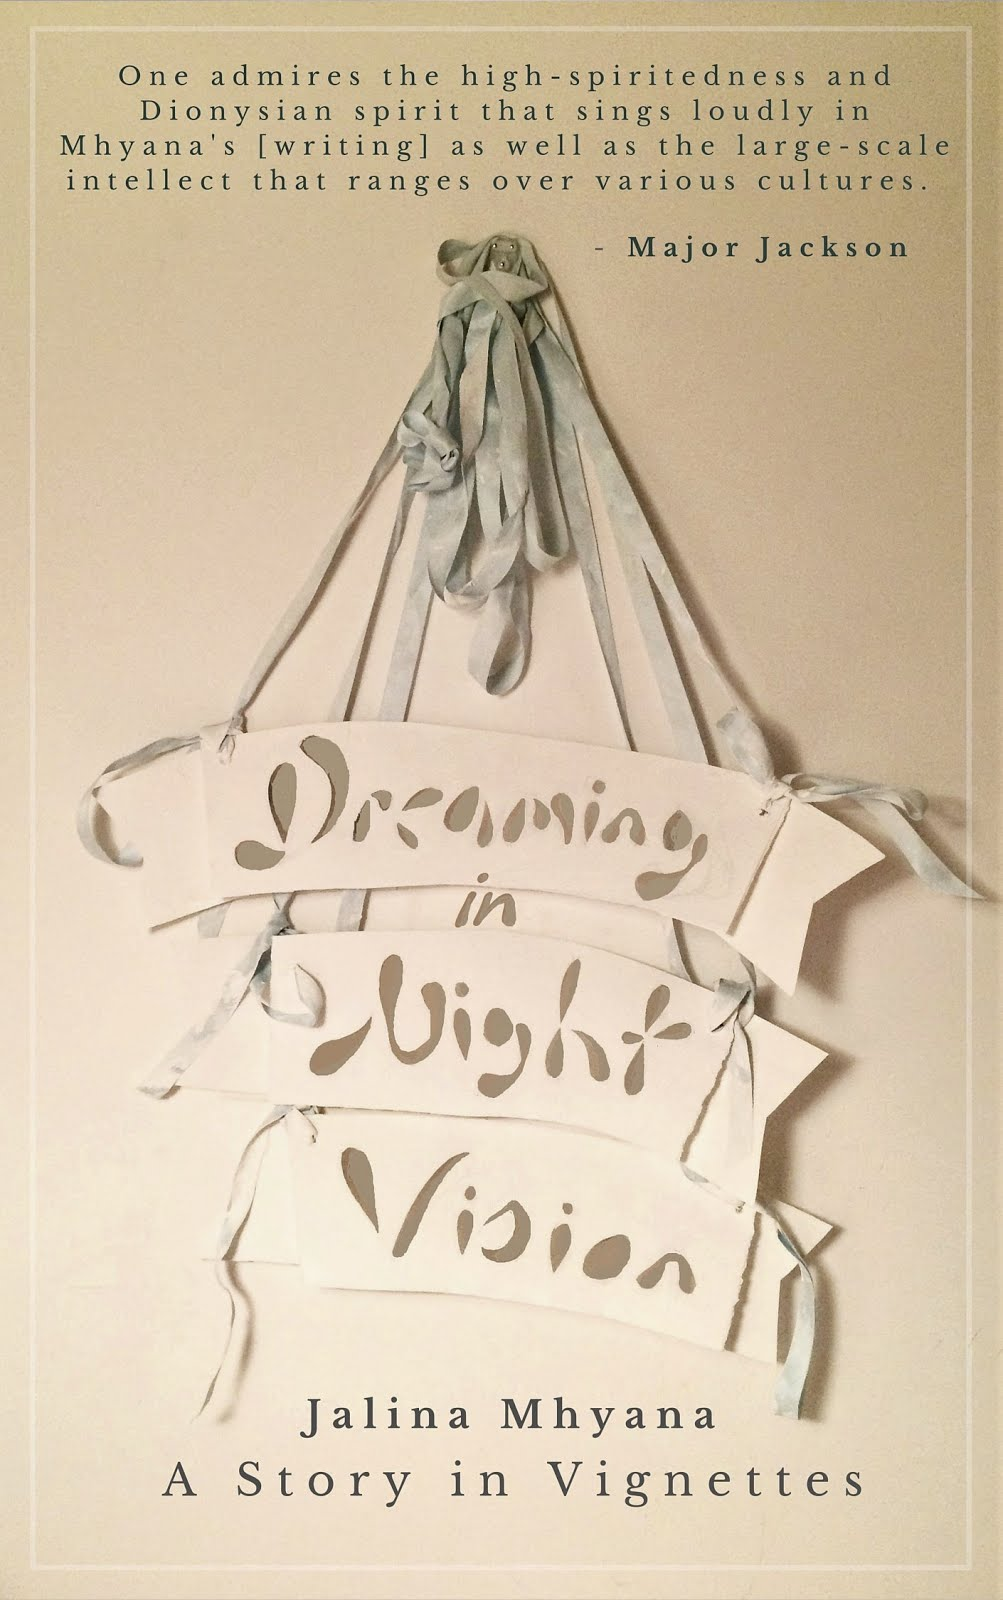 Dreaming in Night Vision: A Story in Vignettes by Jalina Mhyana